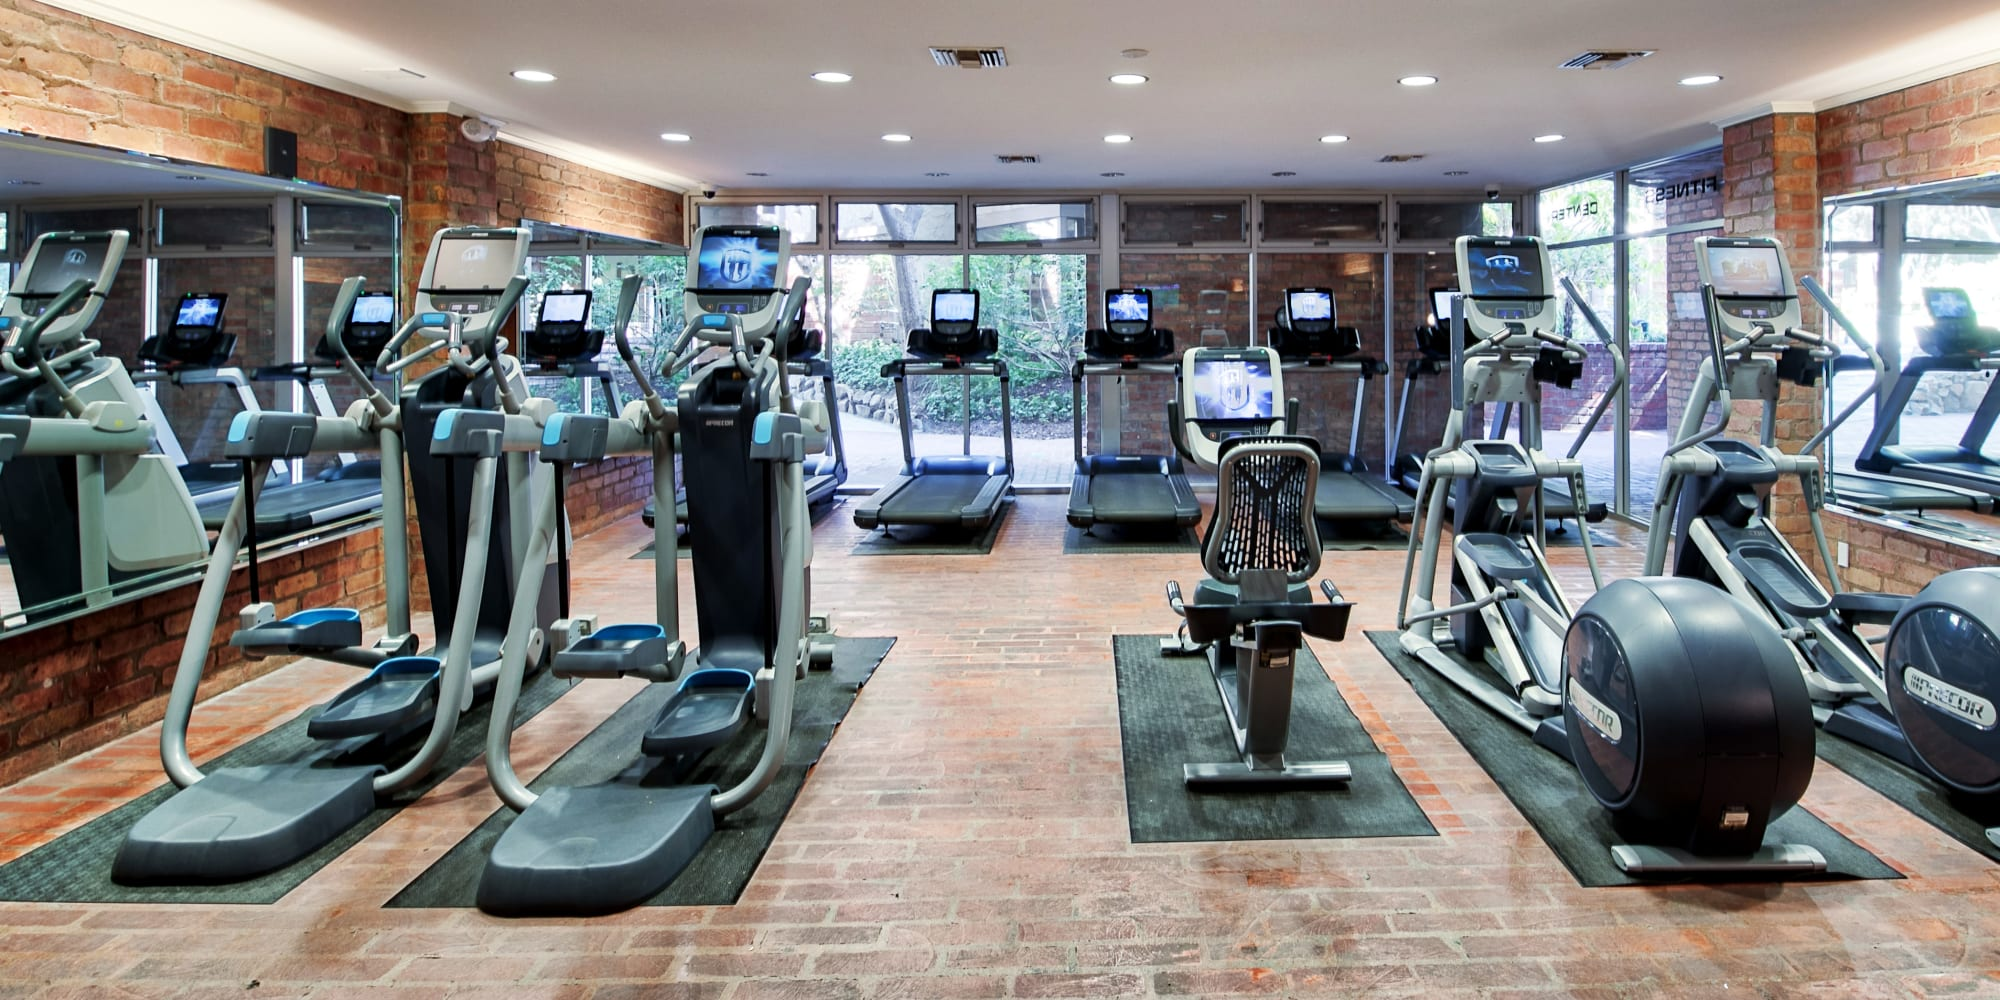 Modern fitness center with plenty of individual workout stations at The Meadows in Culver City, California